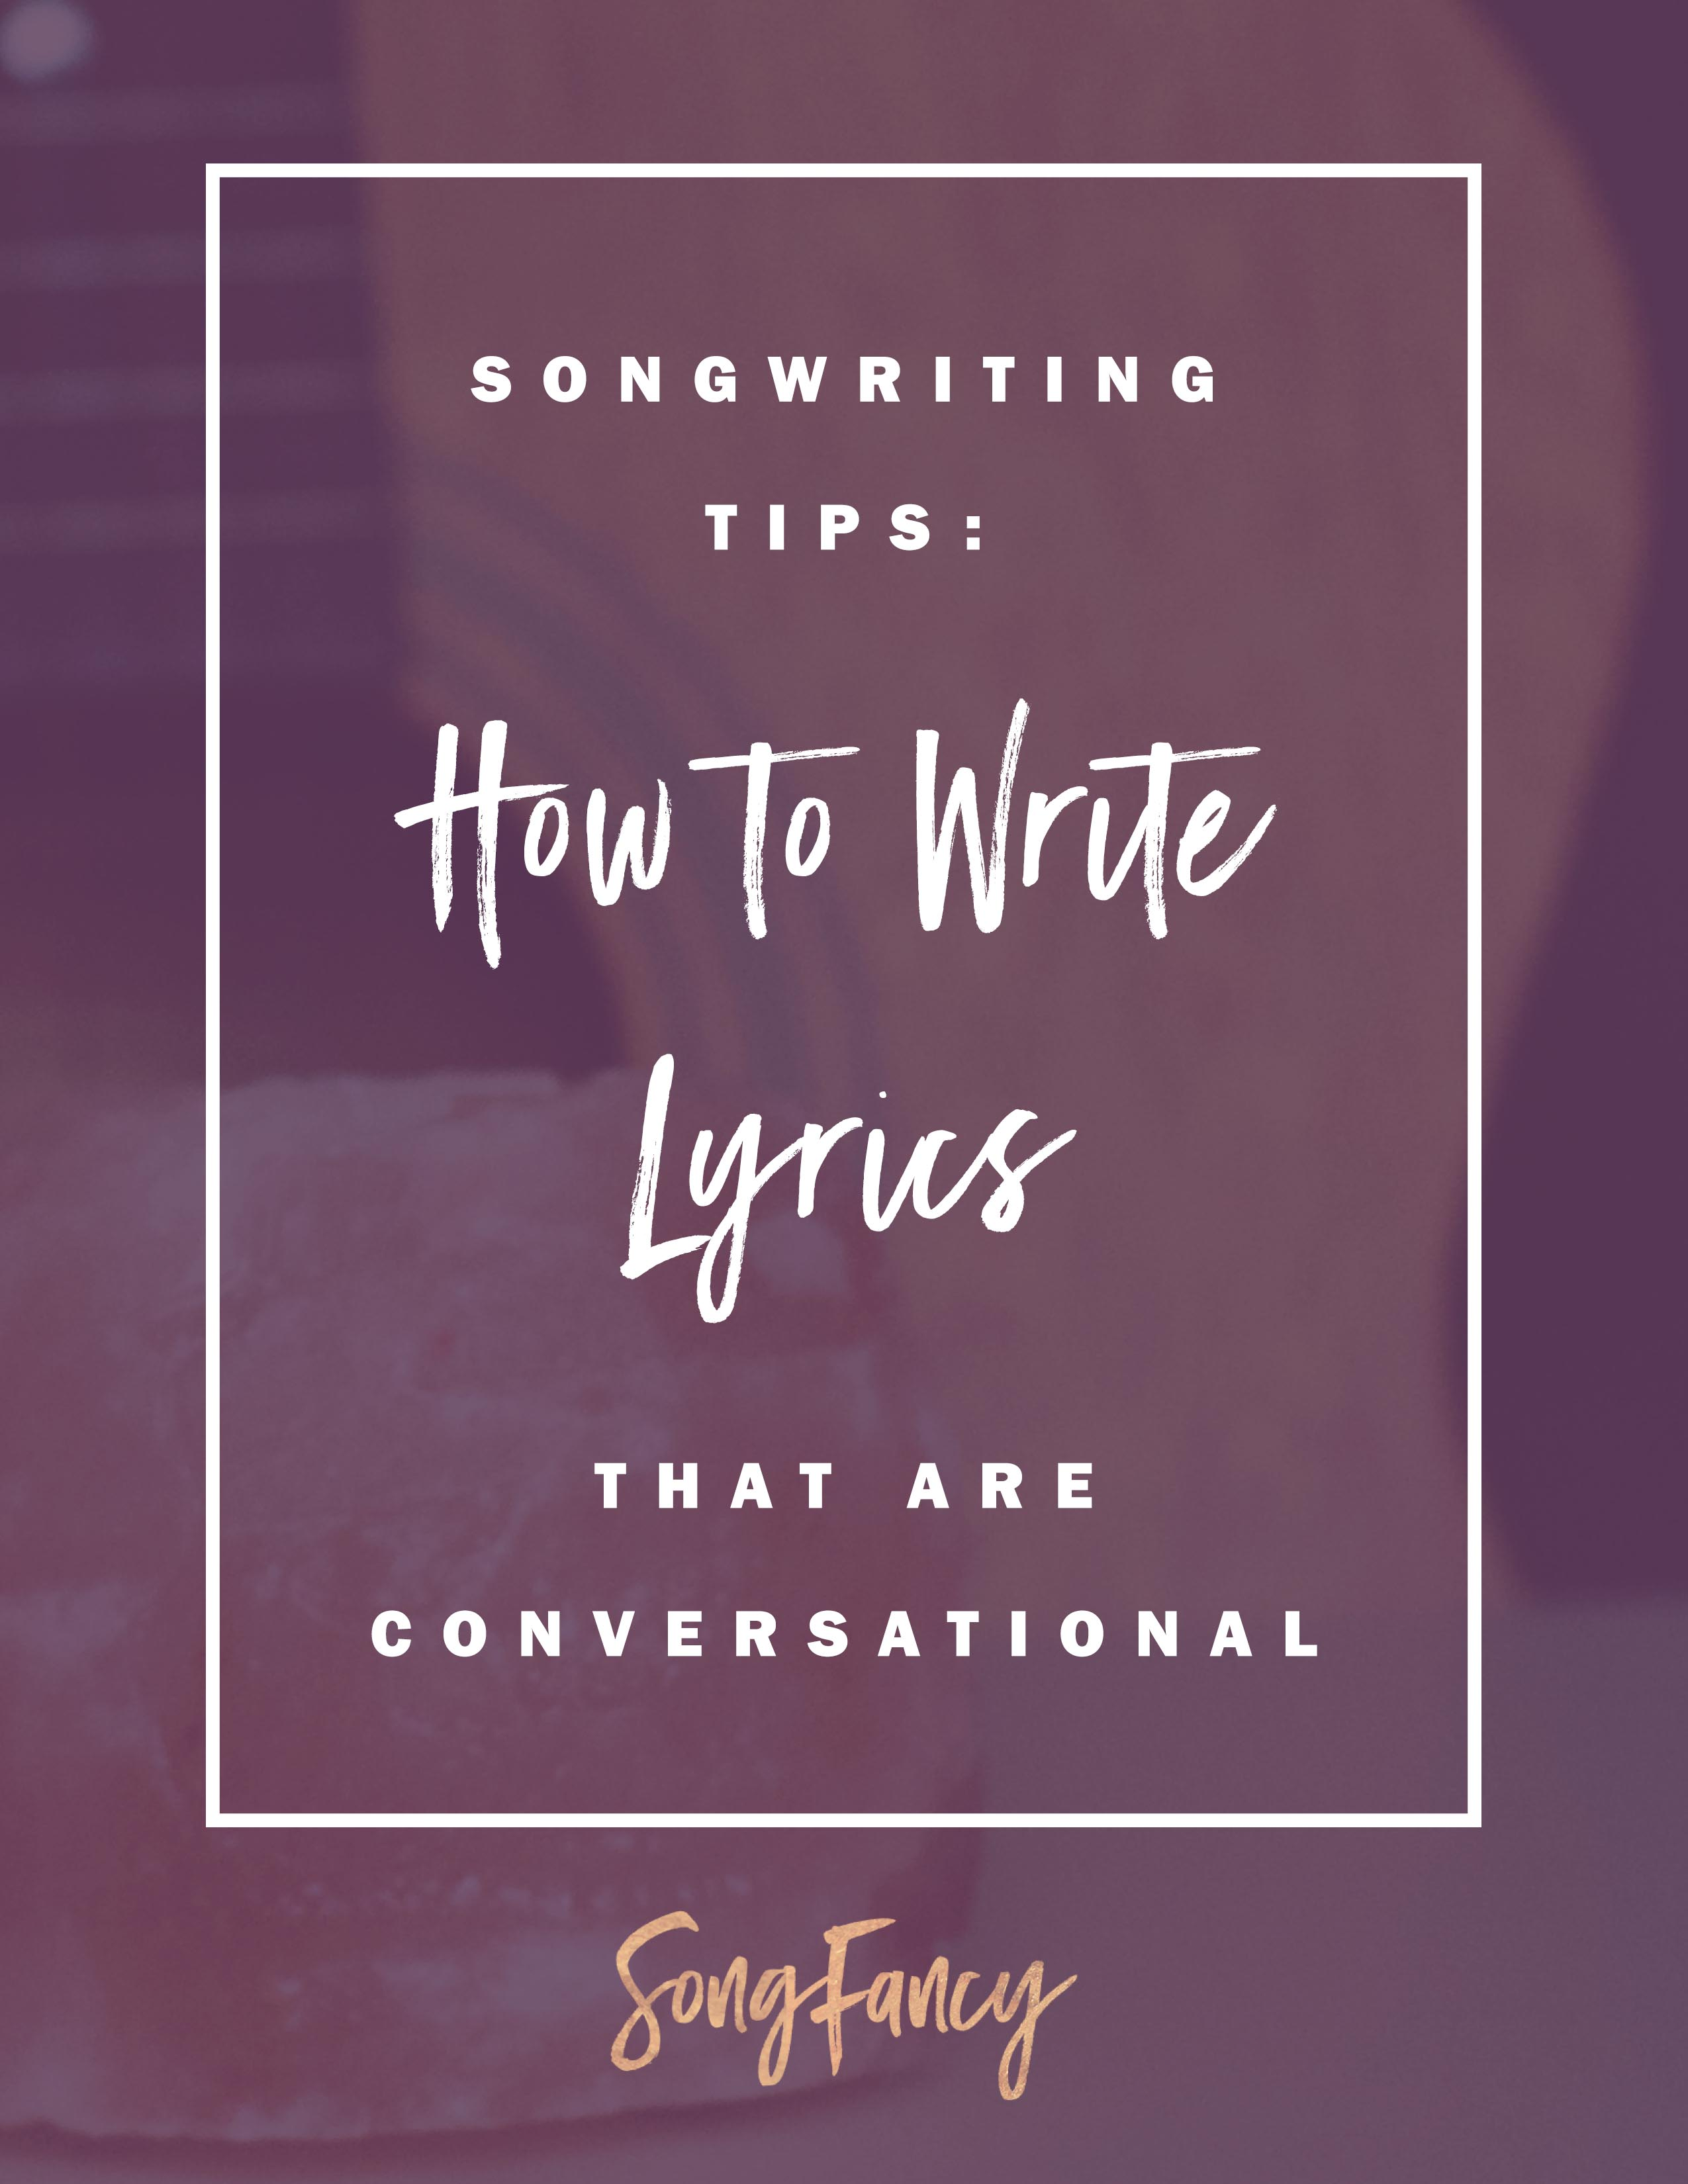 Tips on how to write a great song